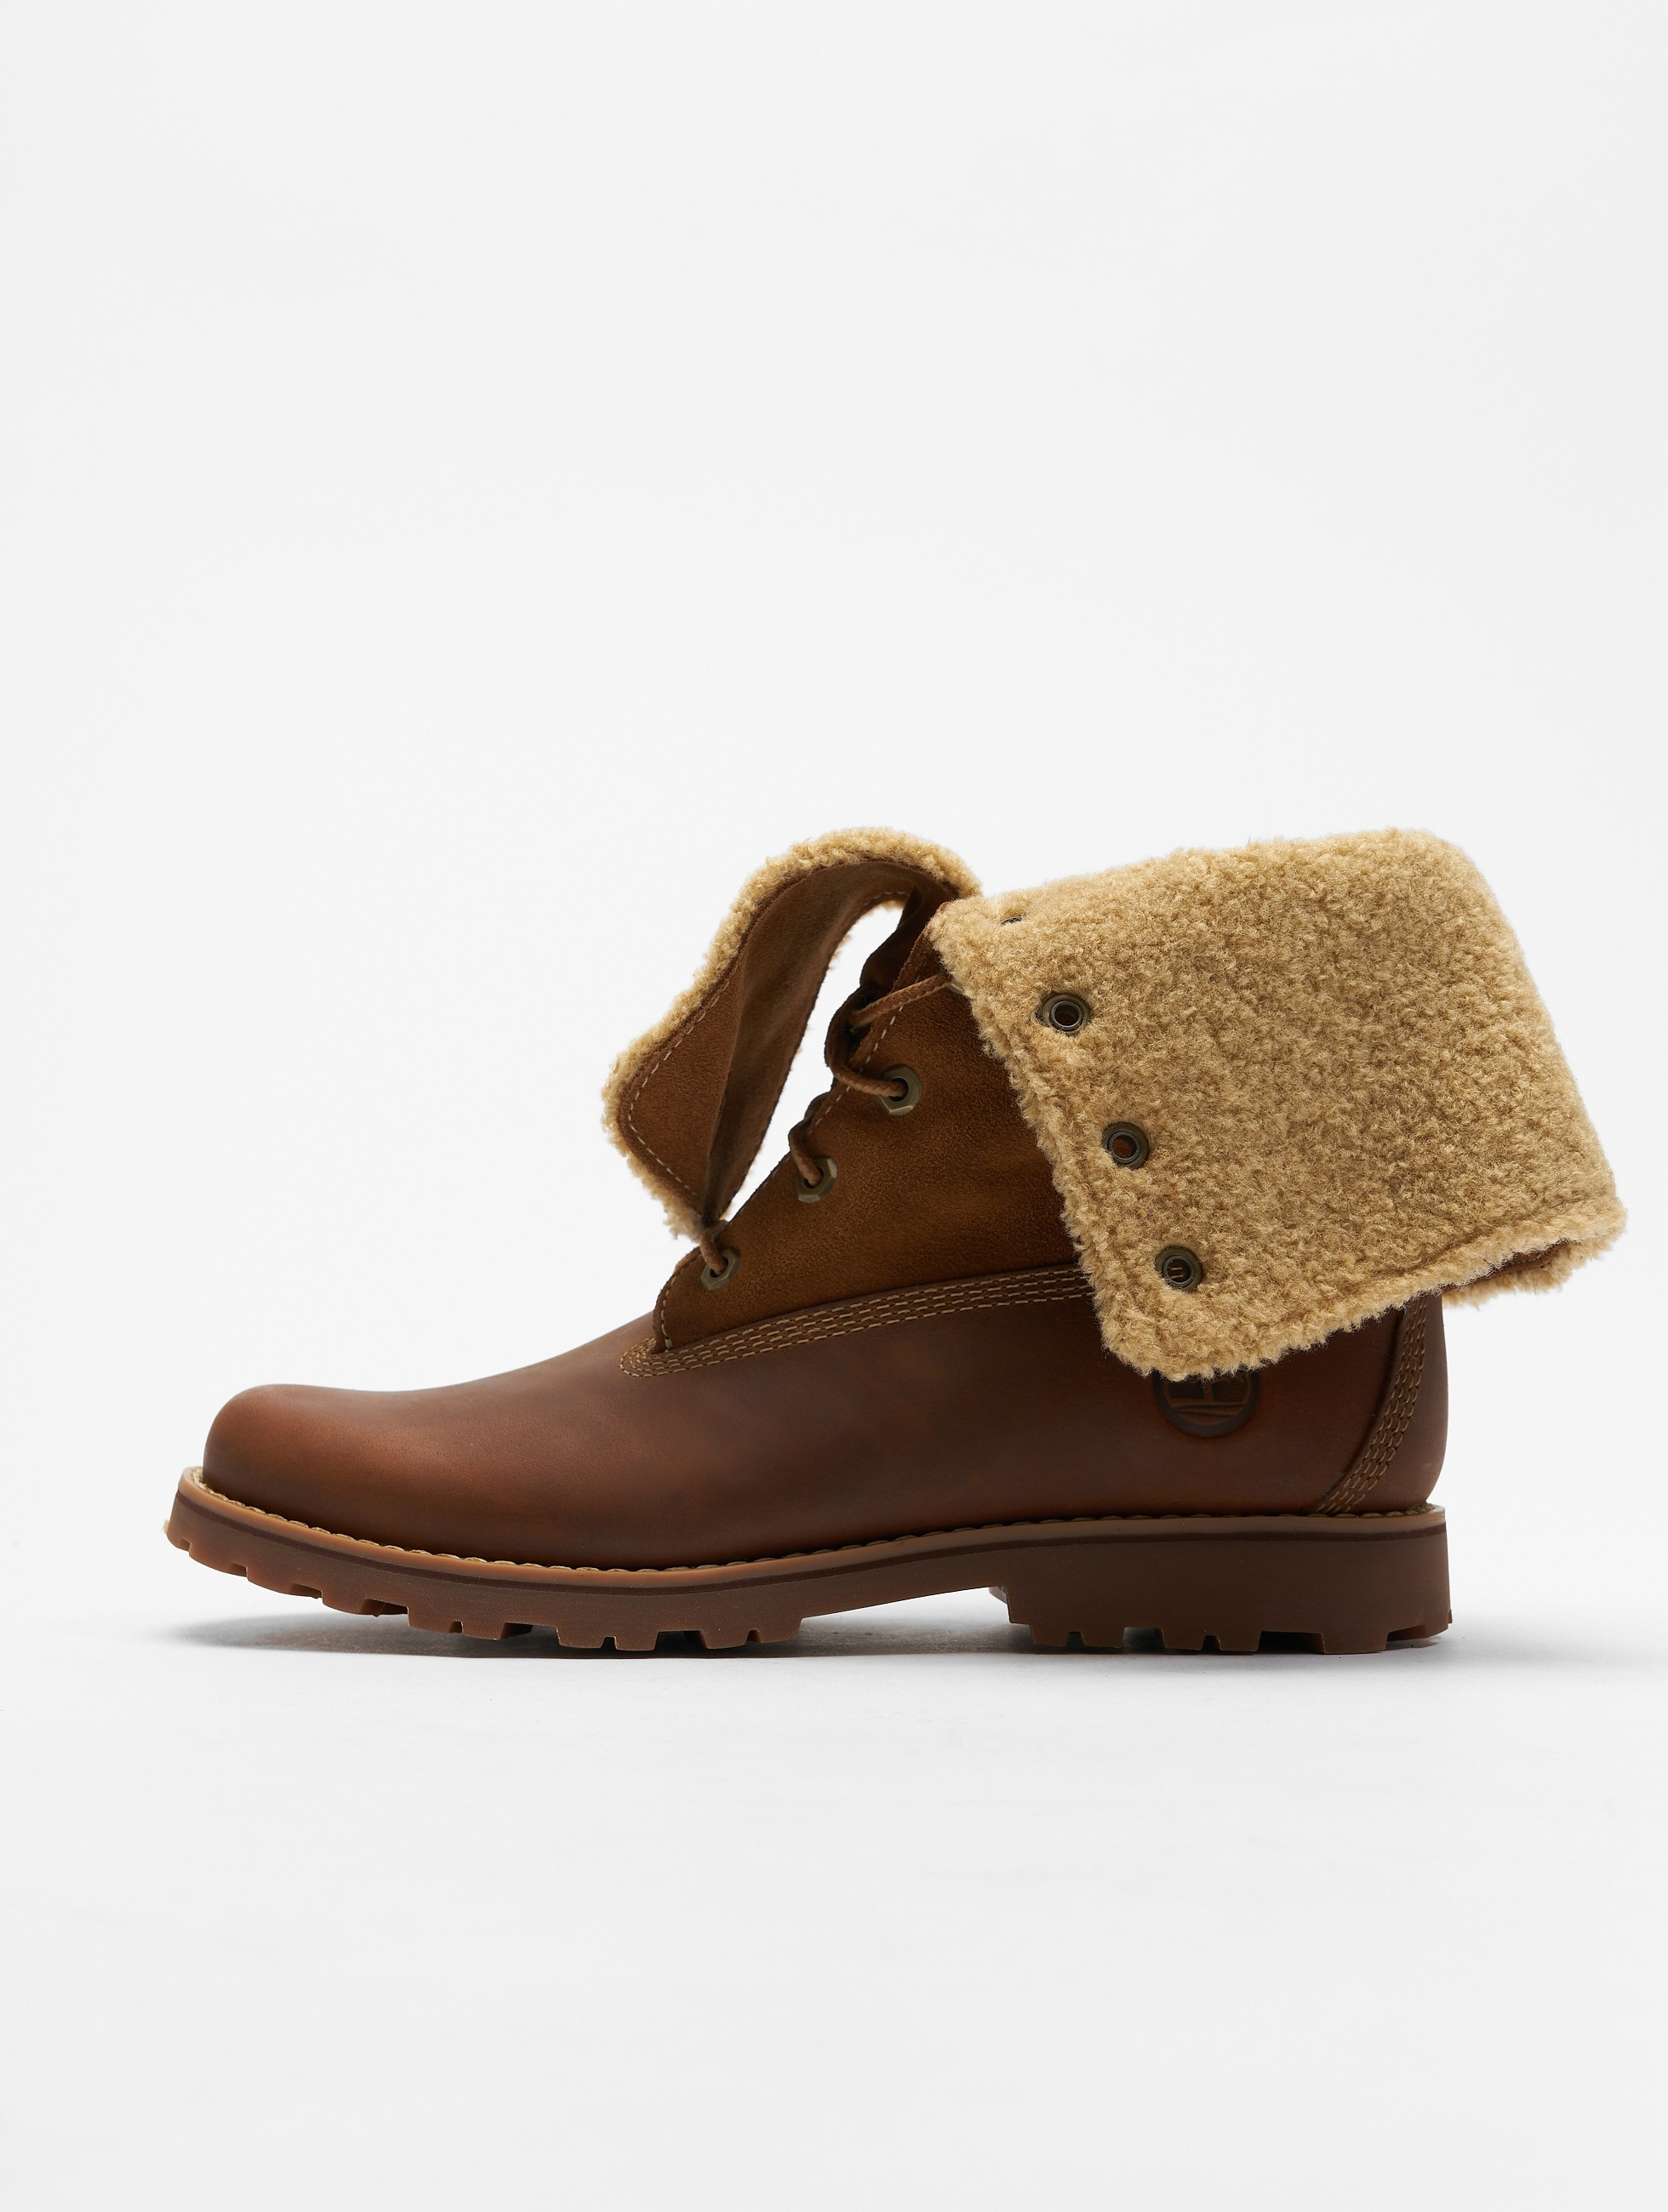 Timberland Authentics 6 In Shearling brun Chaussures montantes femme